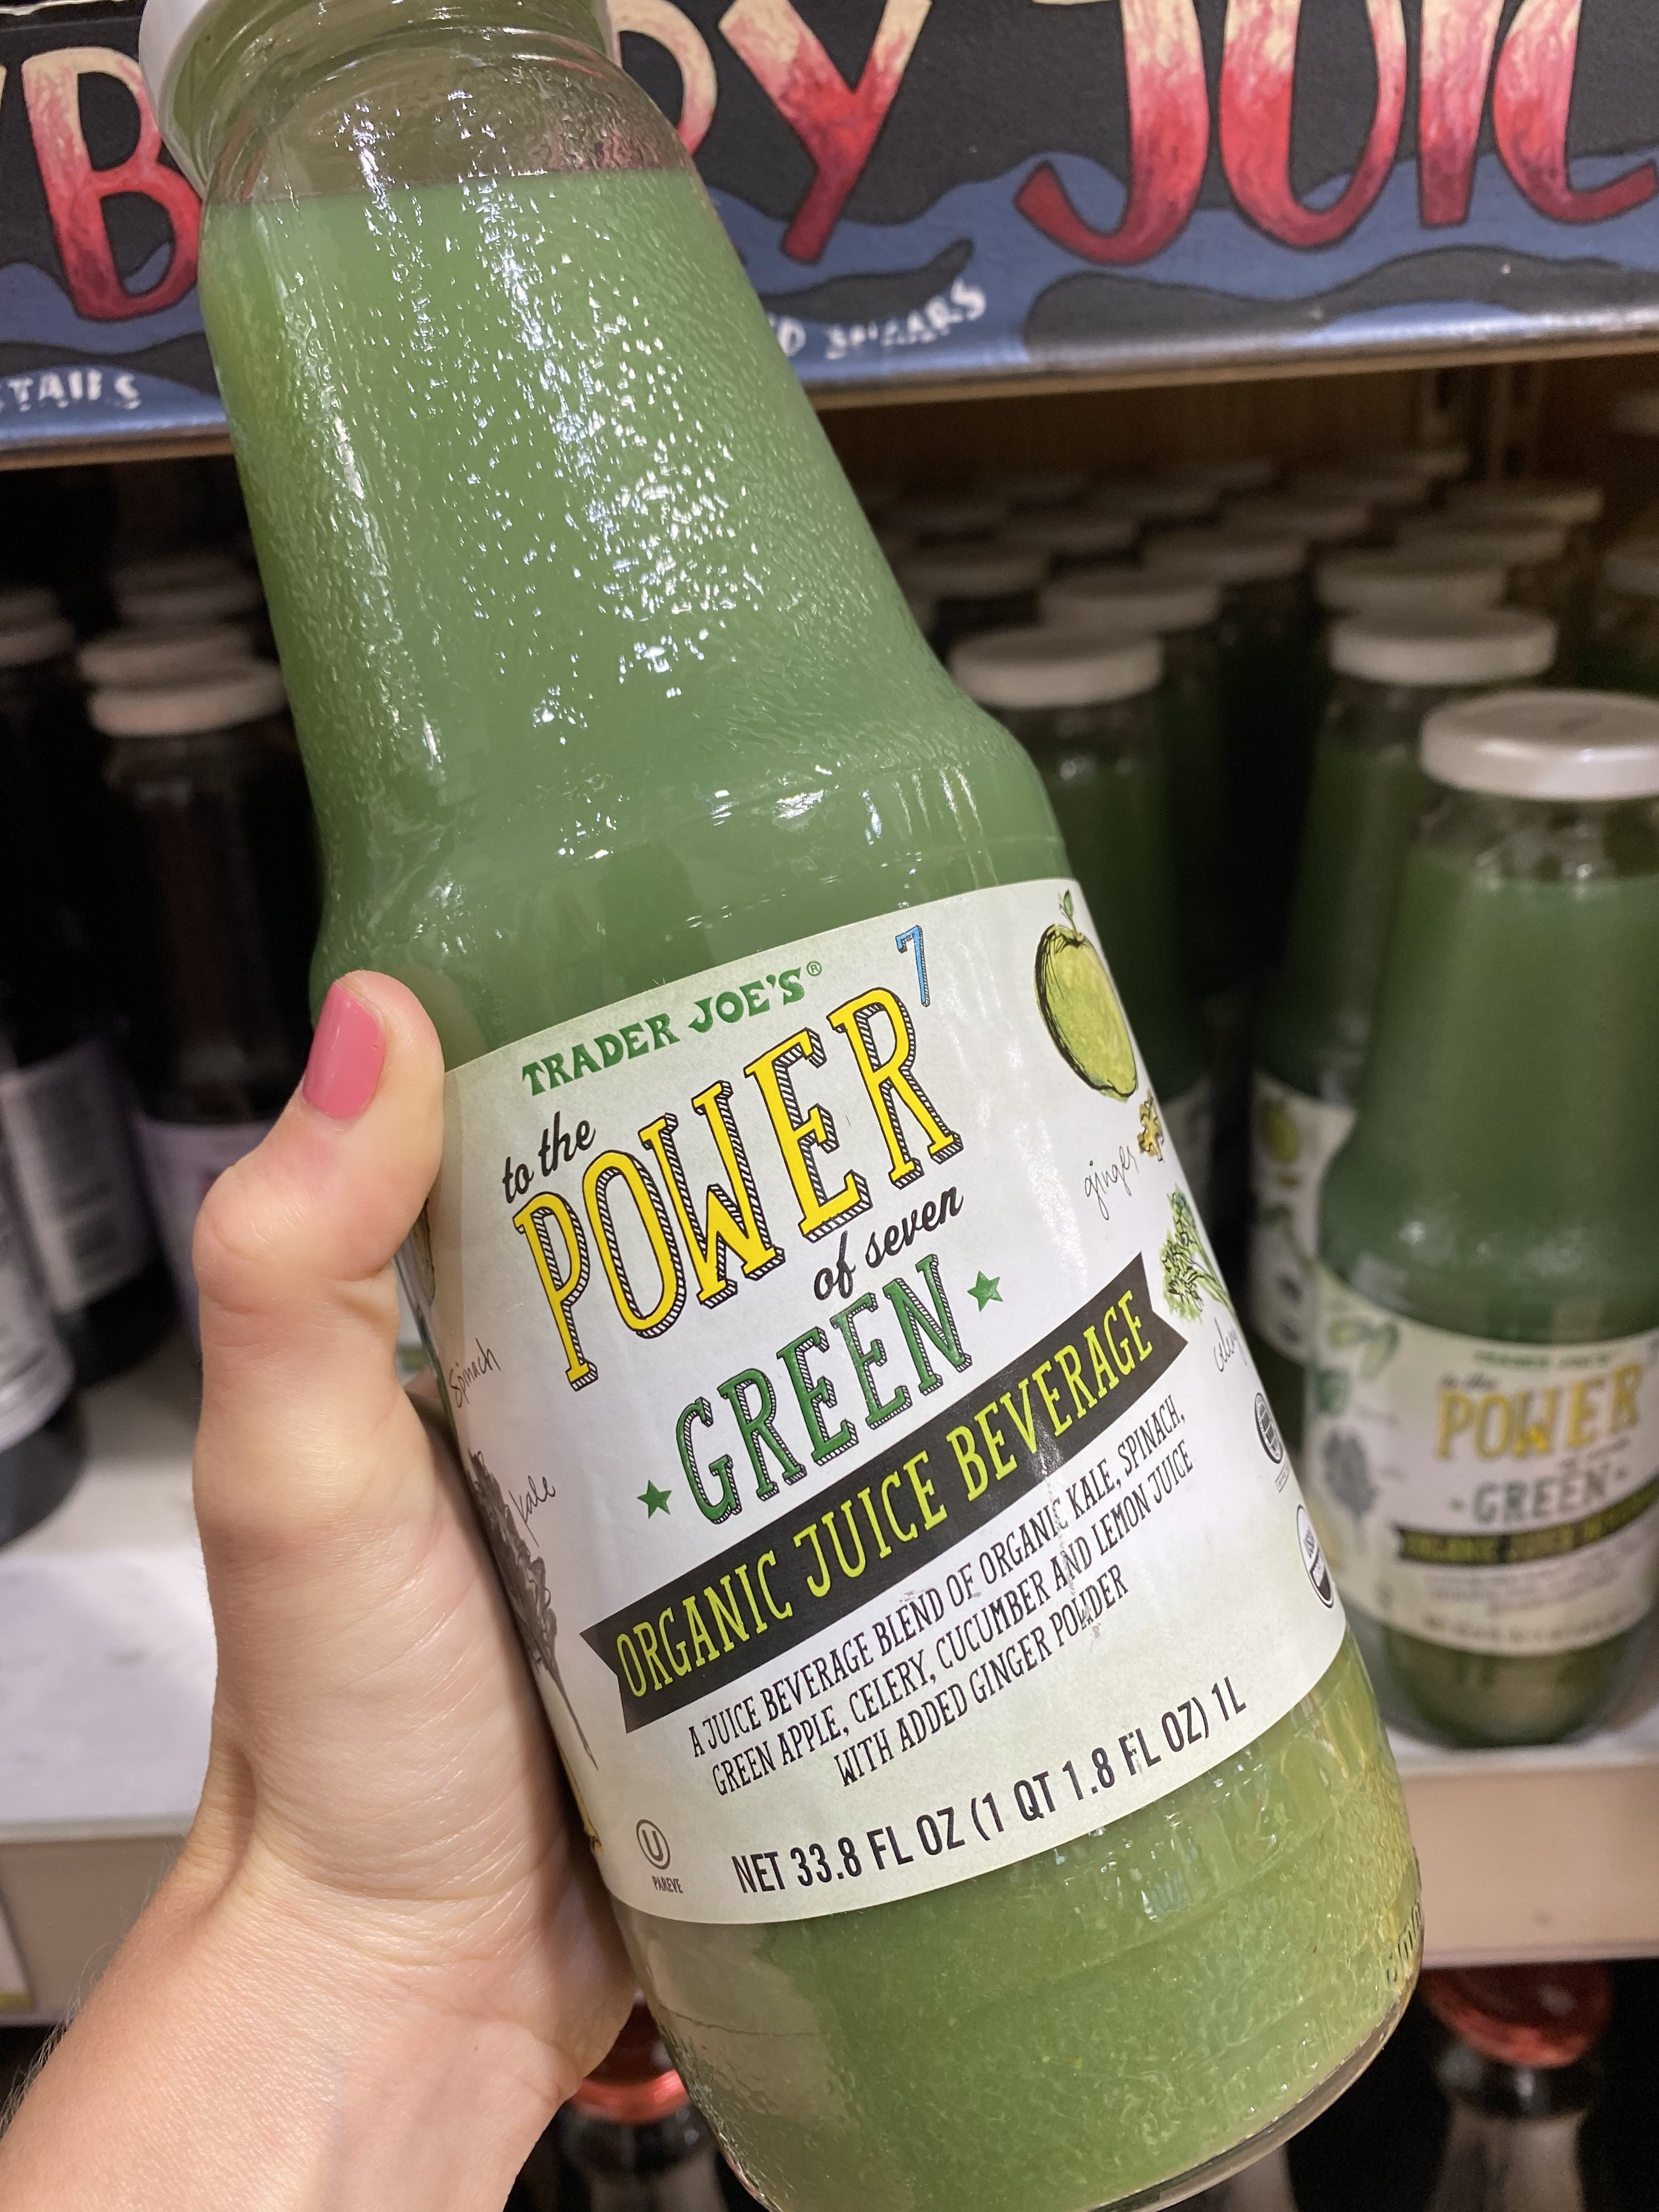 To The Power of Seven Green Organic Juice Beverage